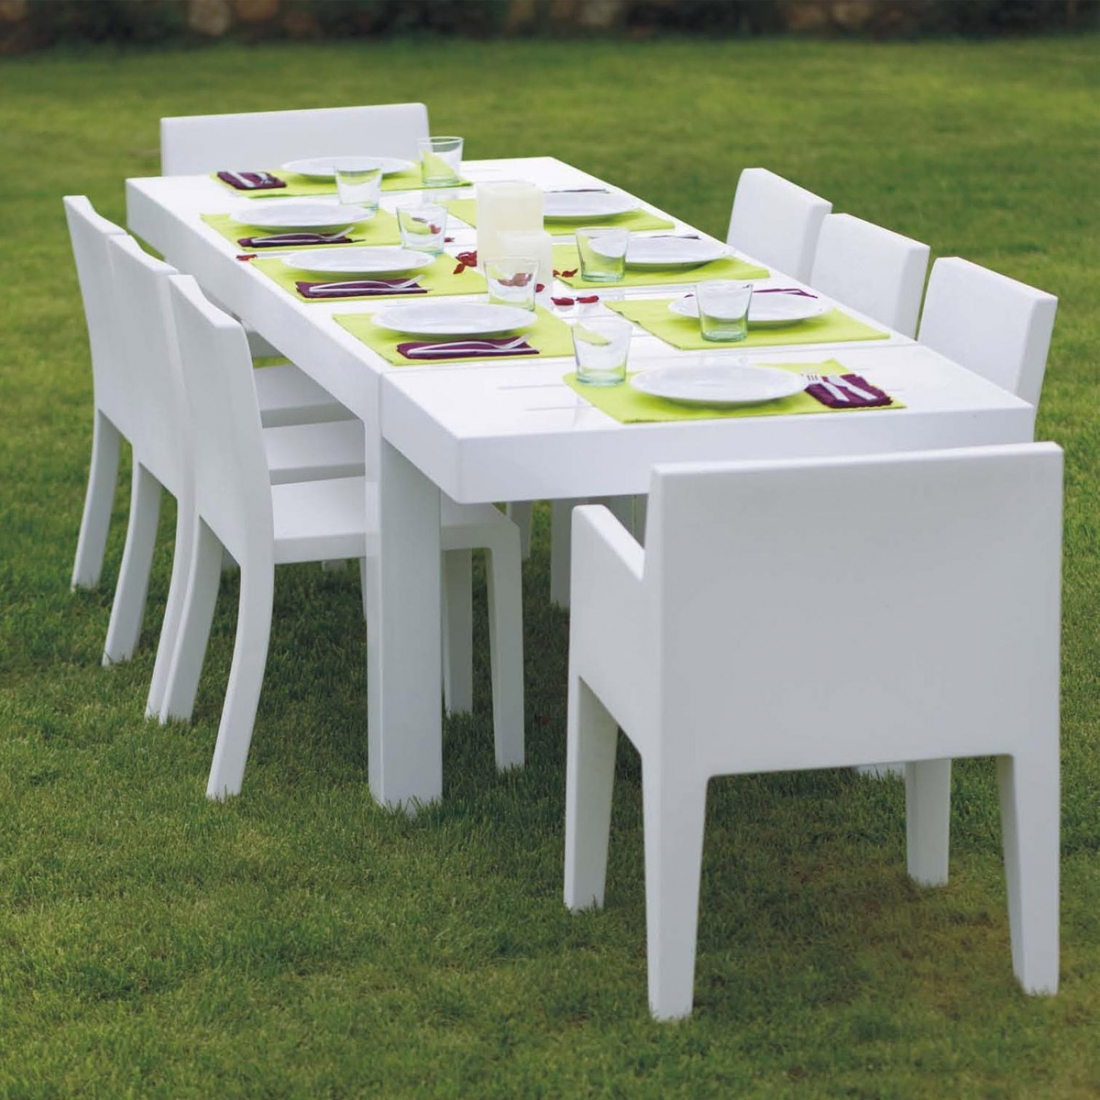 Table de jardin design 10 personnes jut par vondom for Exterieur design